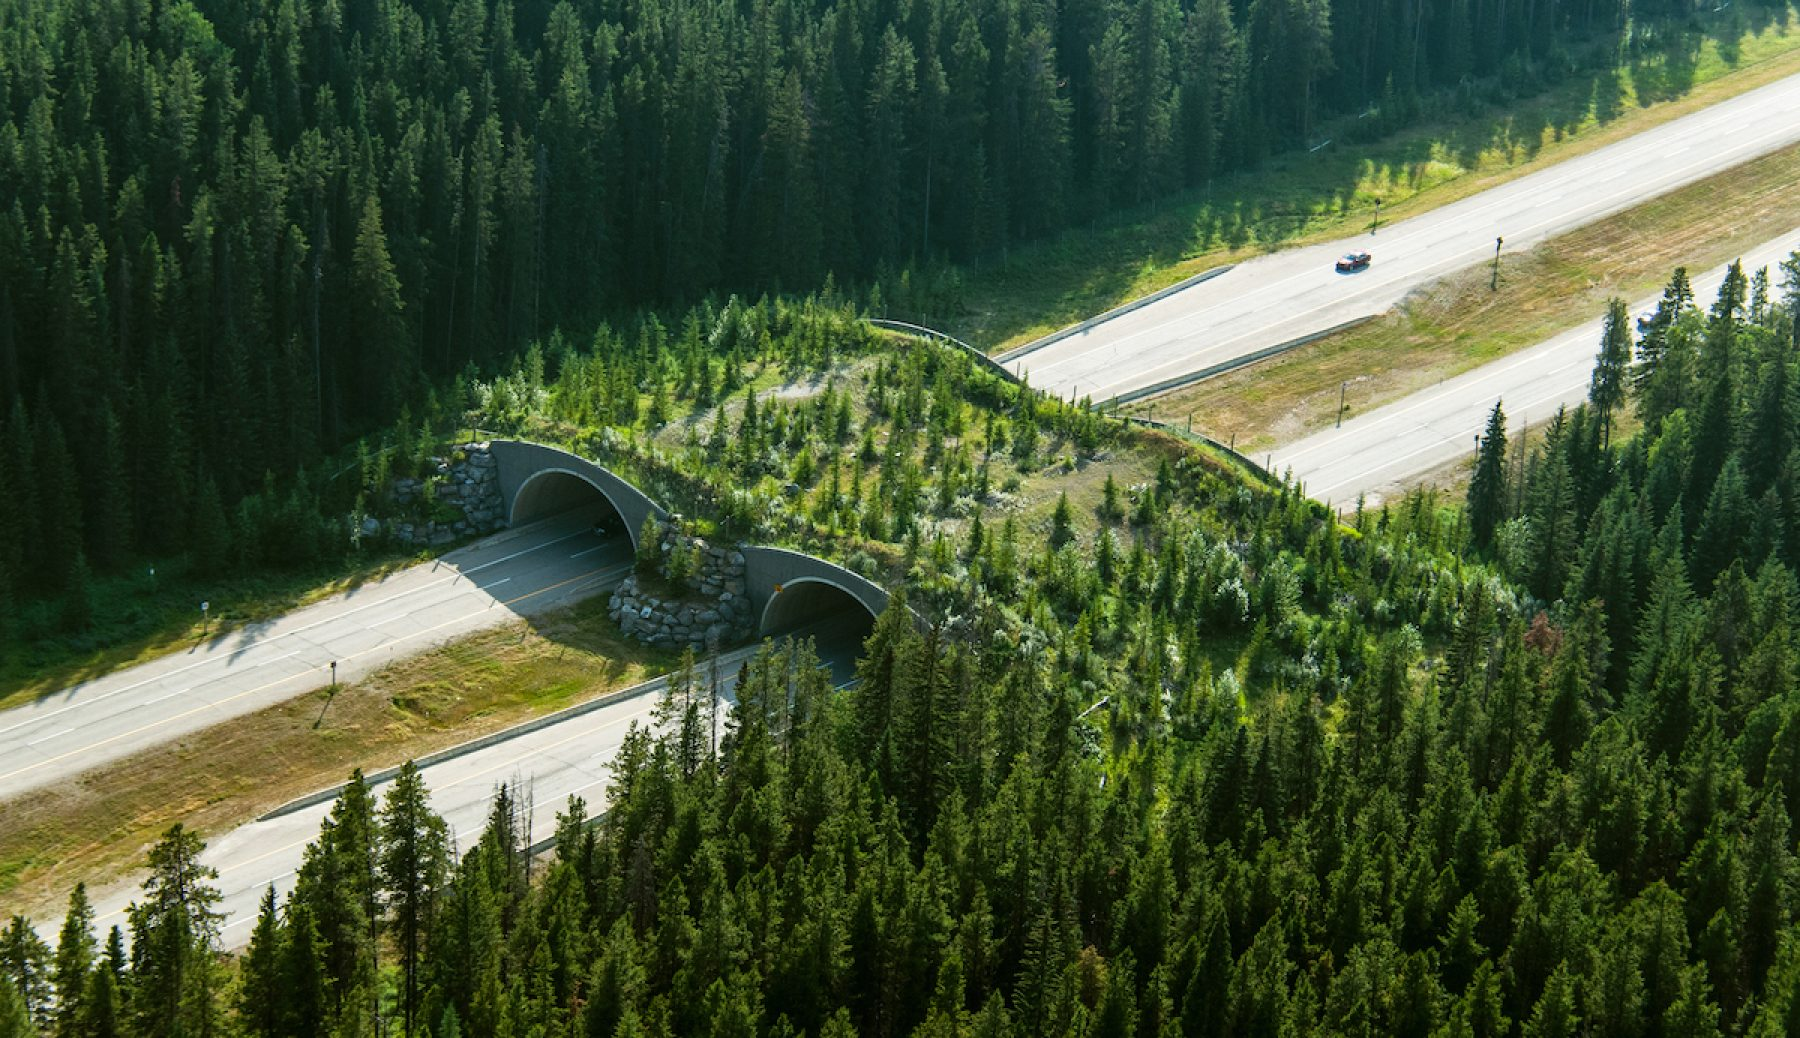 Image for Reindeer viaducts: the latest wildlife bridges that connect fractured habitats